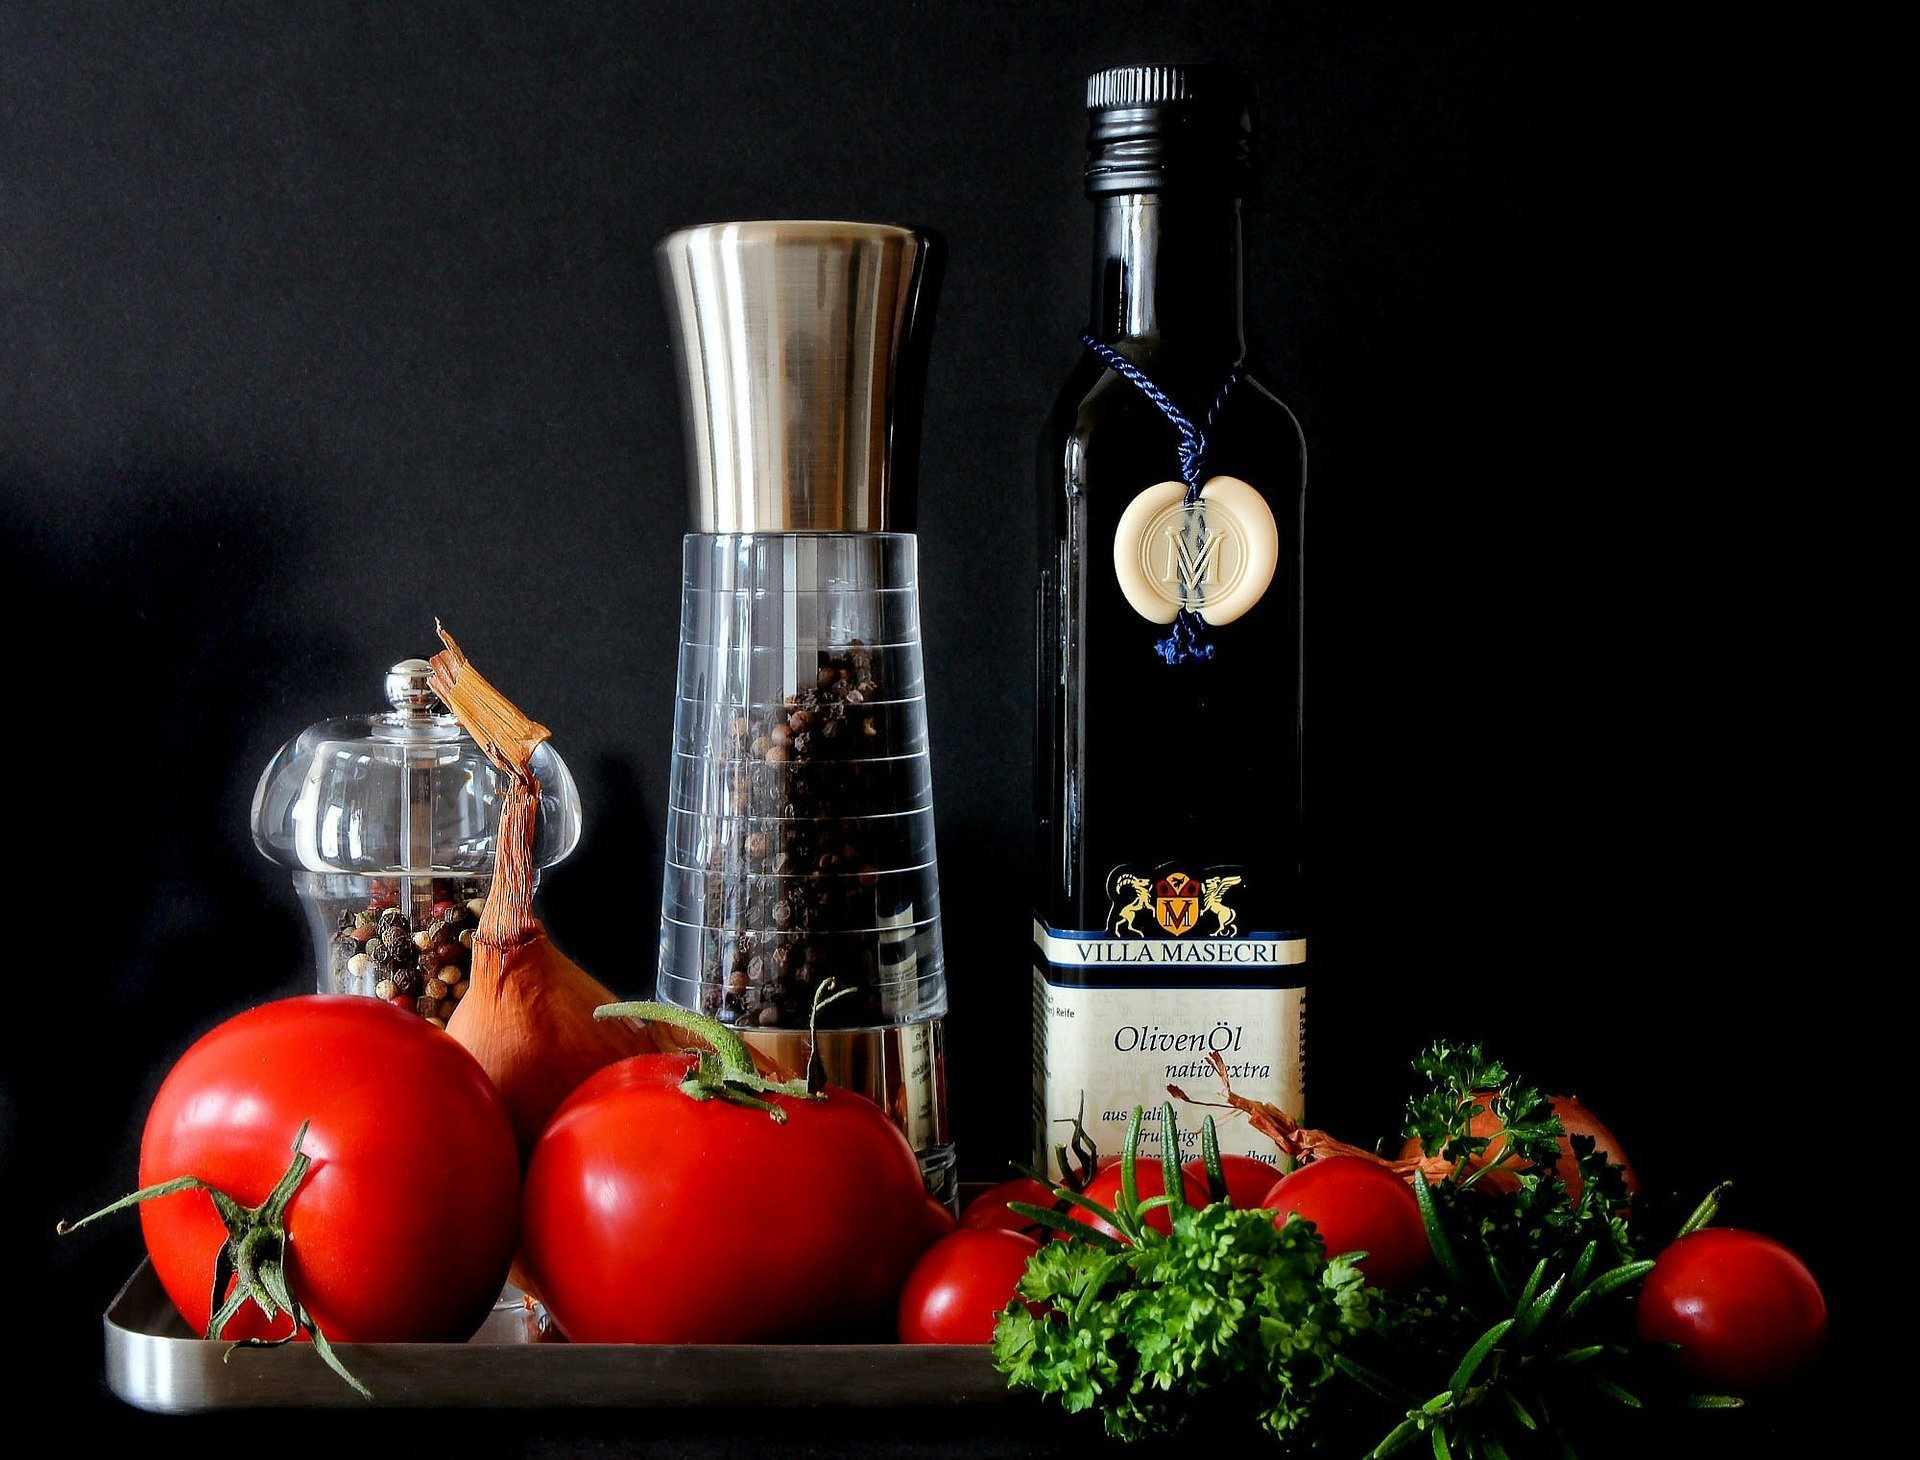 Statins are more effective for those who follow the Mediterranean diet